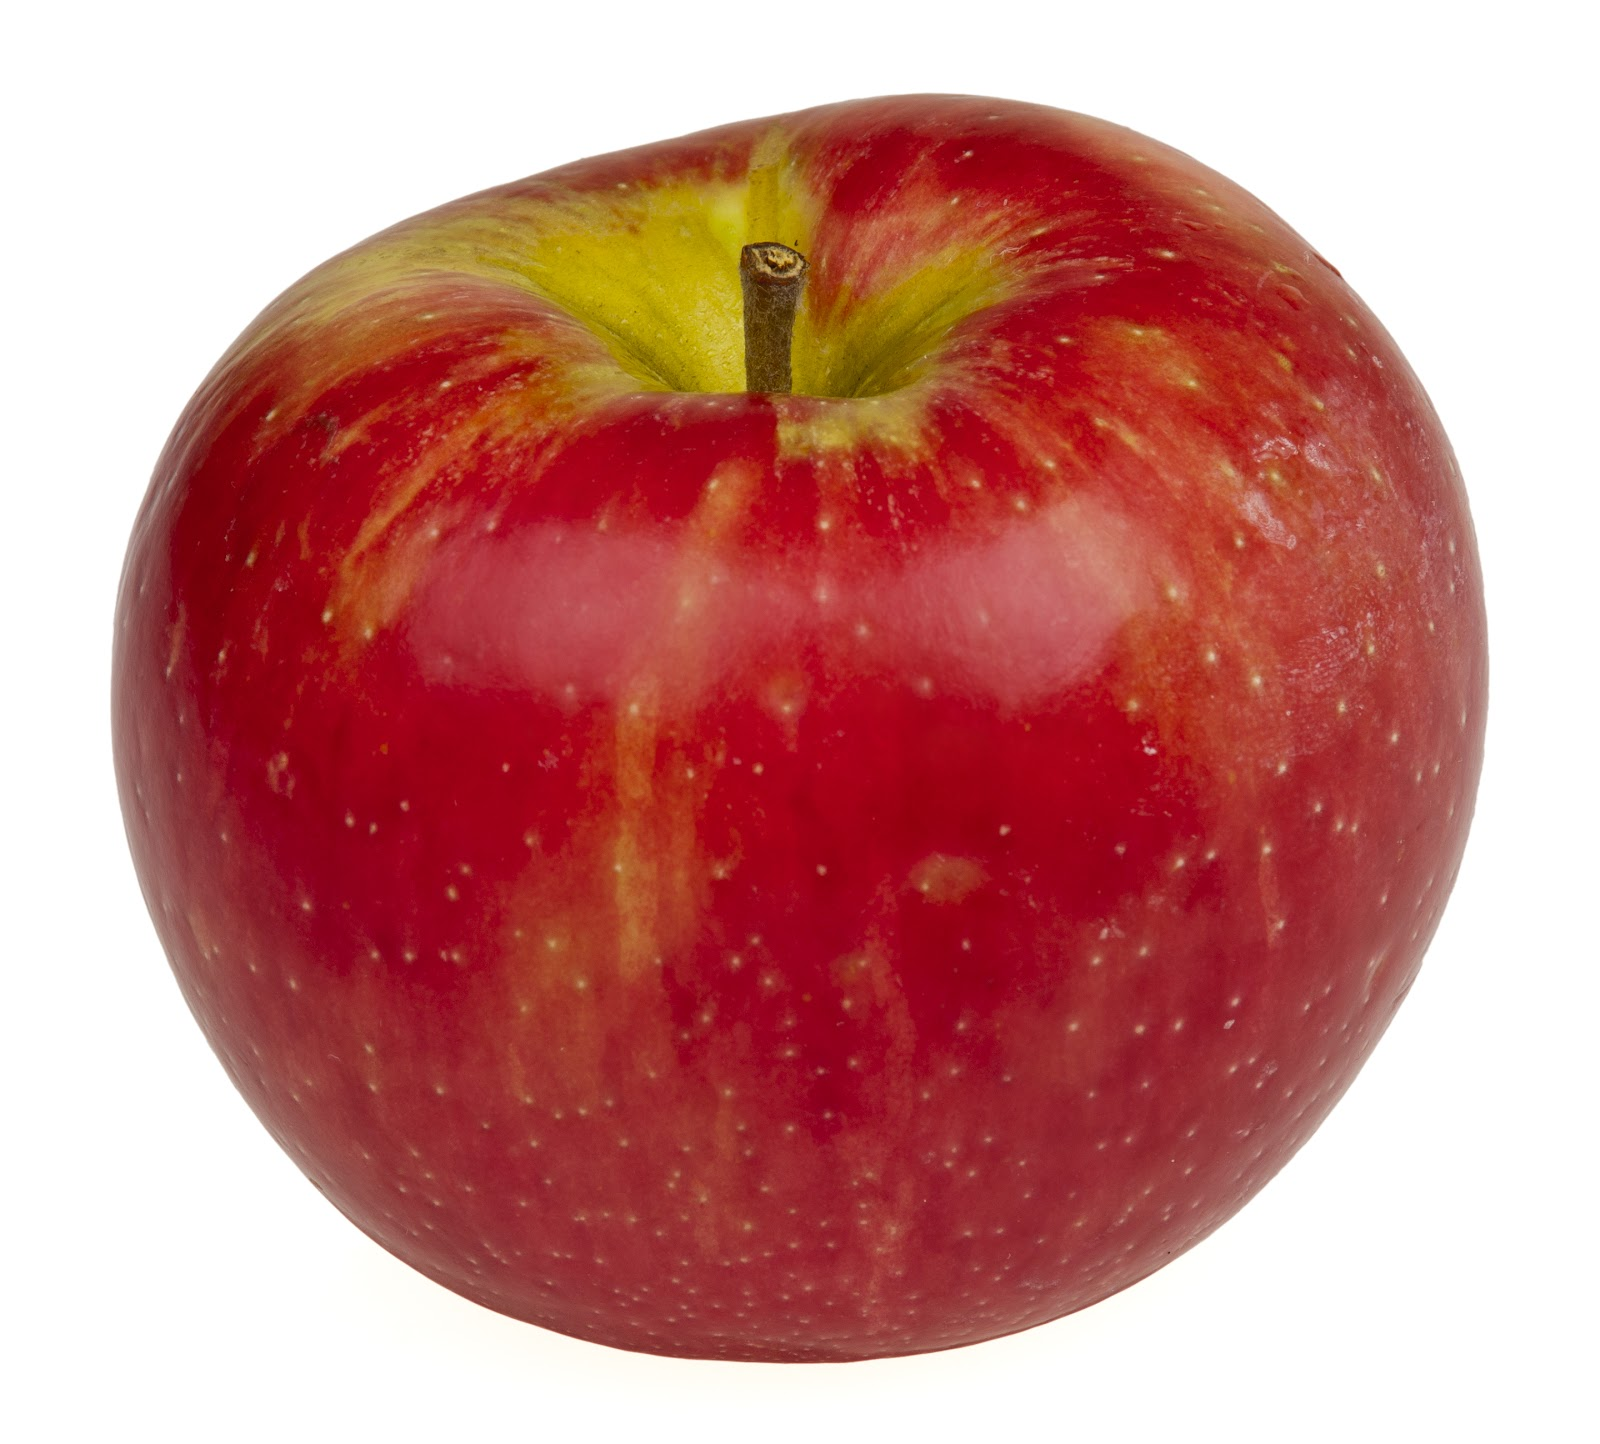 File:Honeycrisp-Apple.jpg - Wikimedia Commons